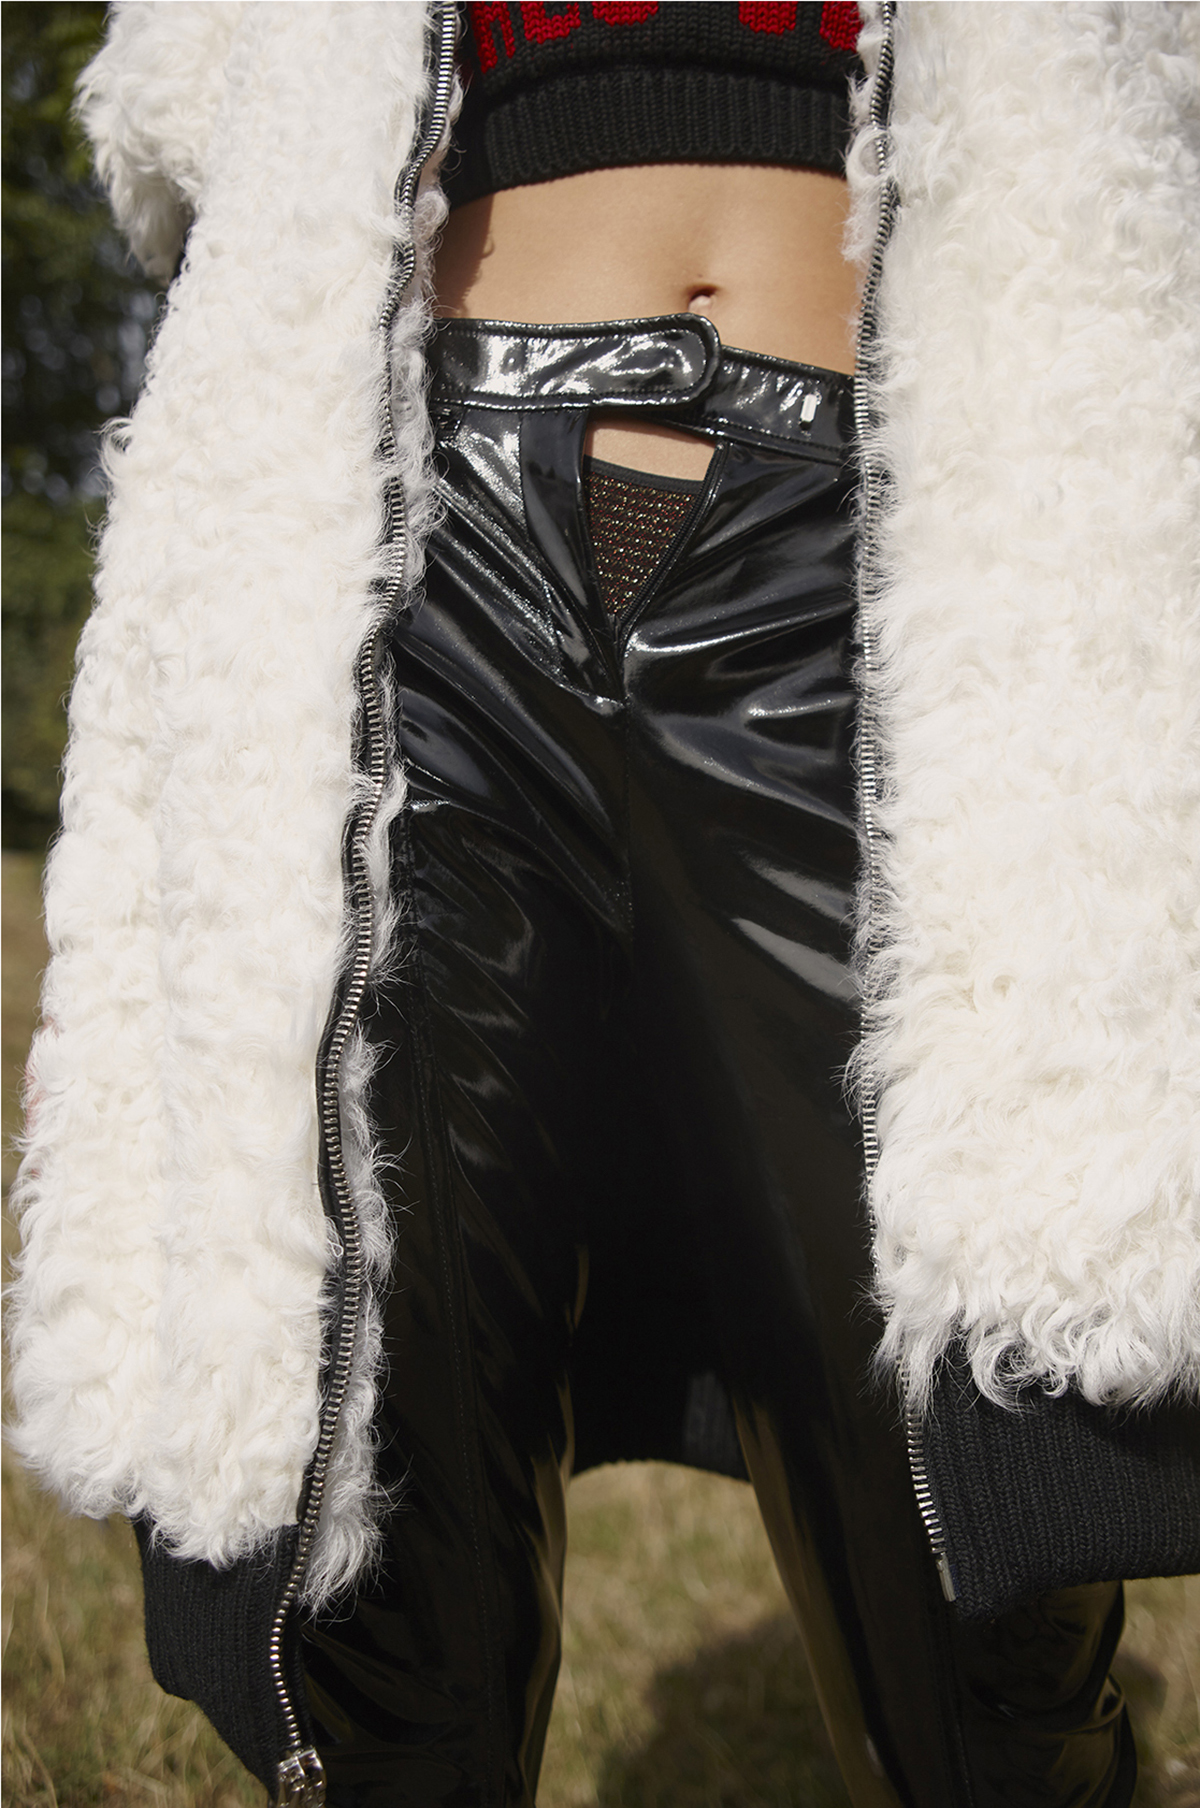 Top and Trousers  GCDS    Fur Vest  Nervure    Underwear  Love Stories